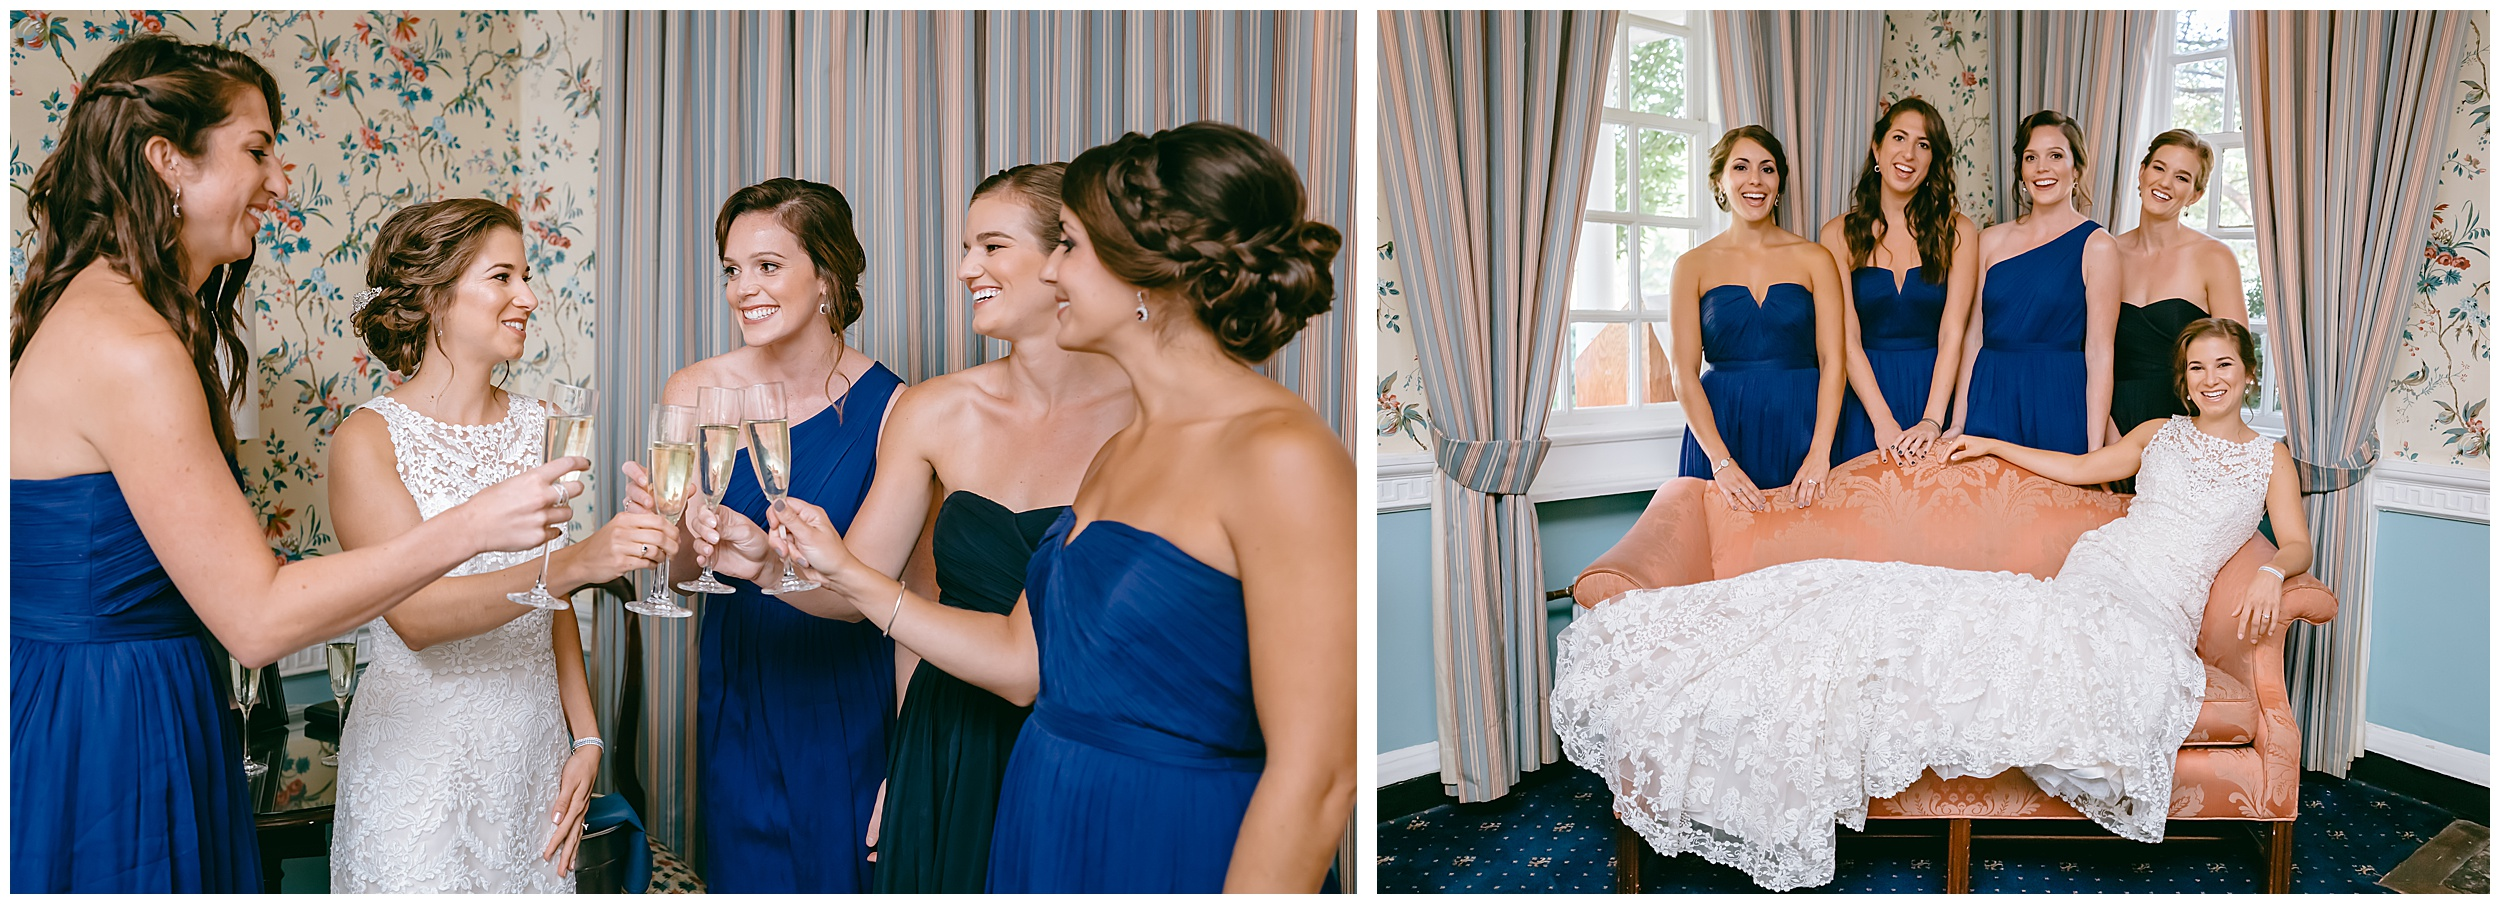 bridal-wedding-party-portrait-toasts